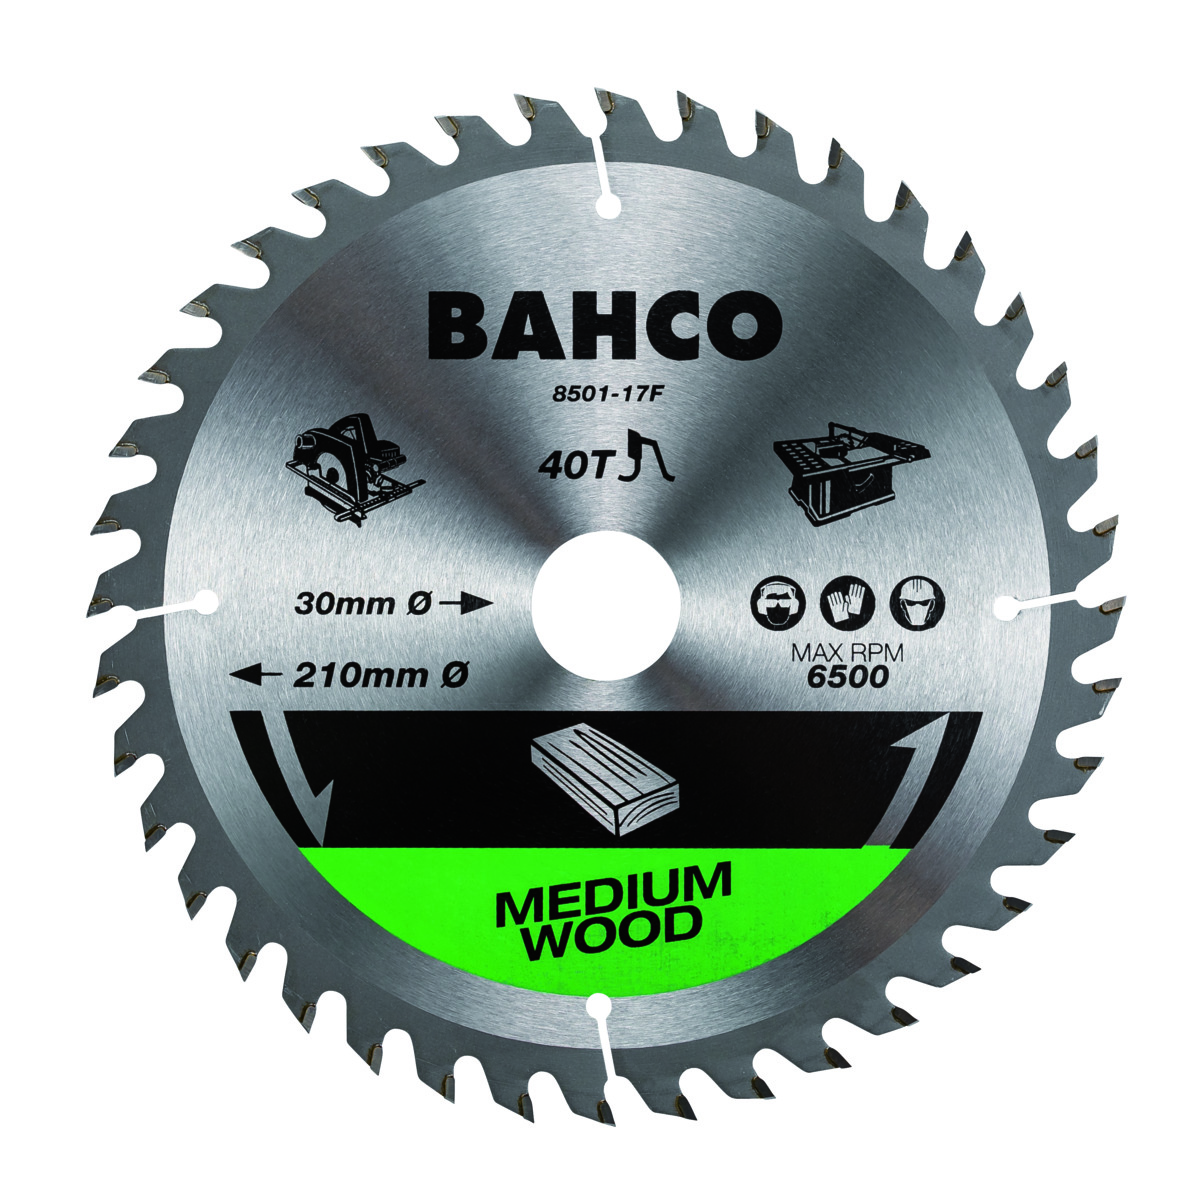 Circular saw blade for cordless saw machines 184x16mm 24T for wood